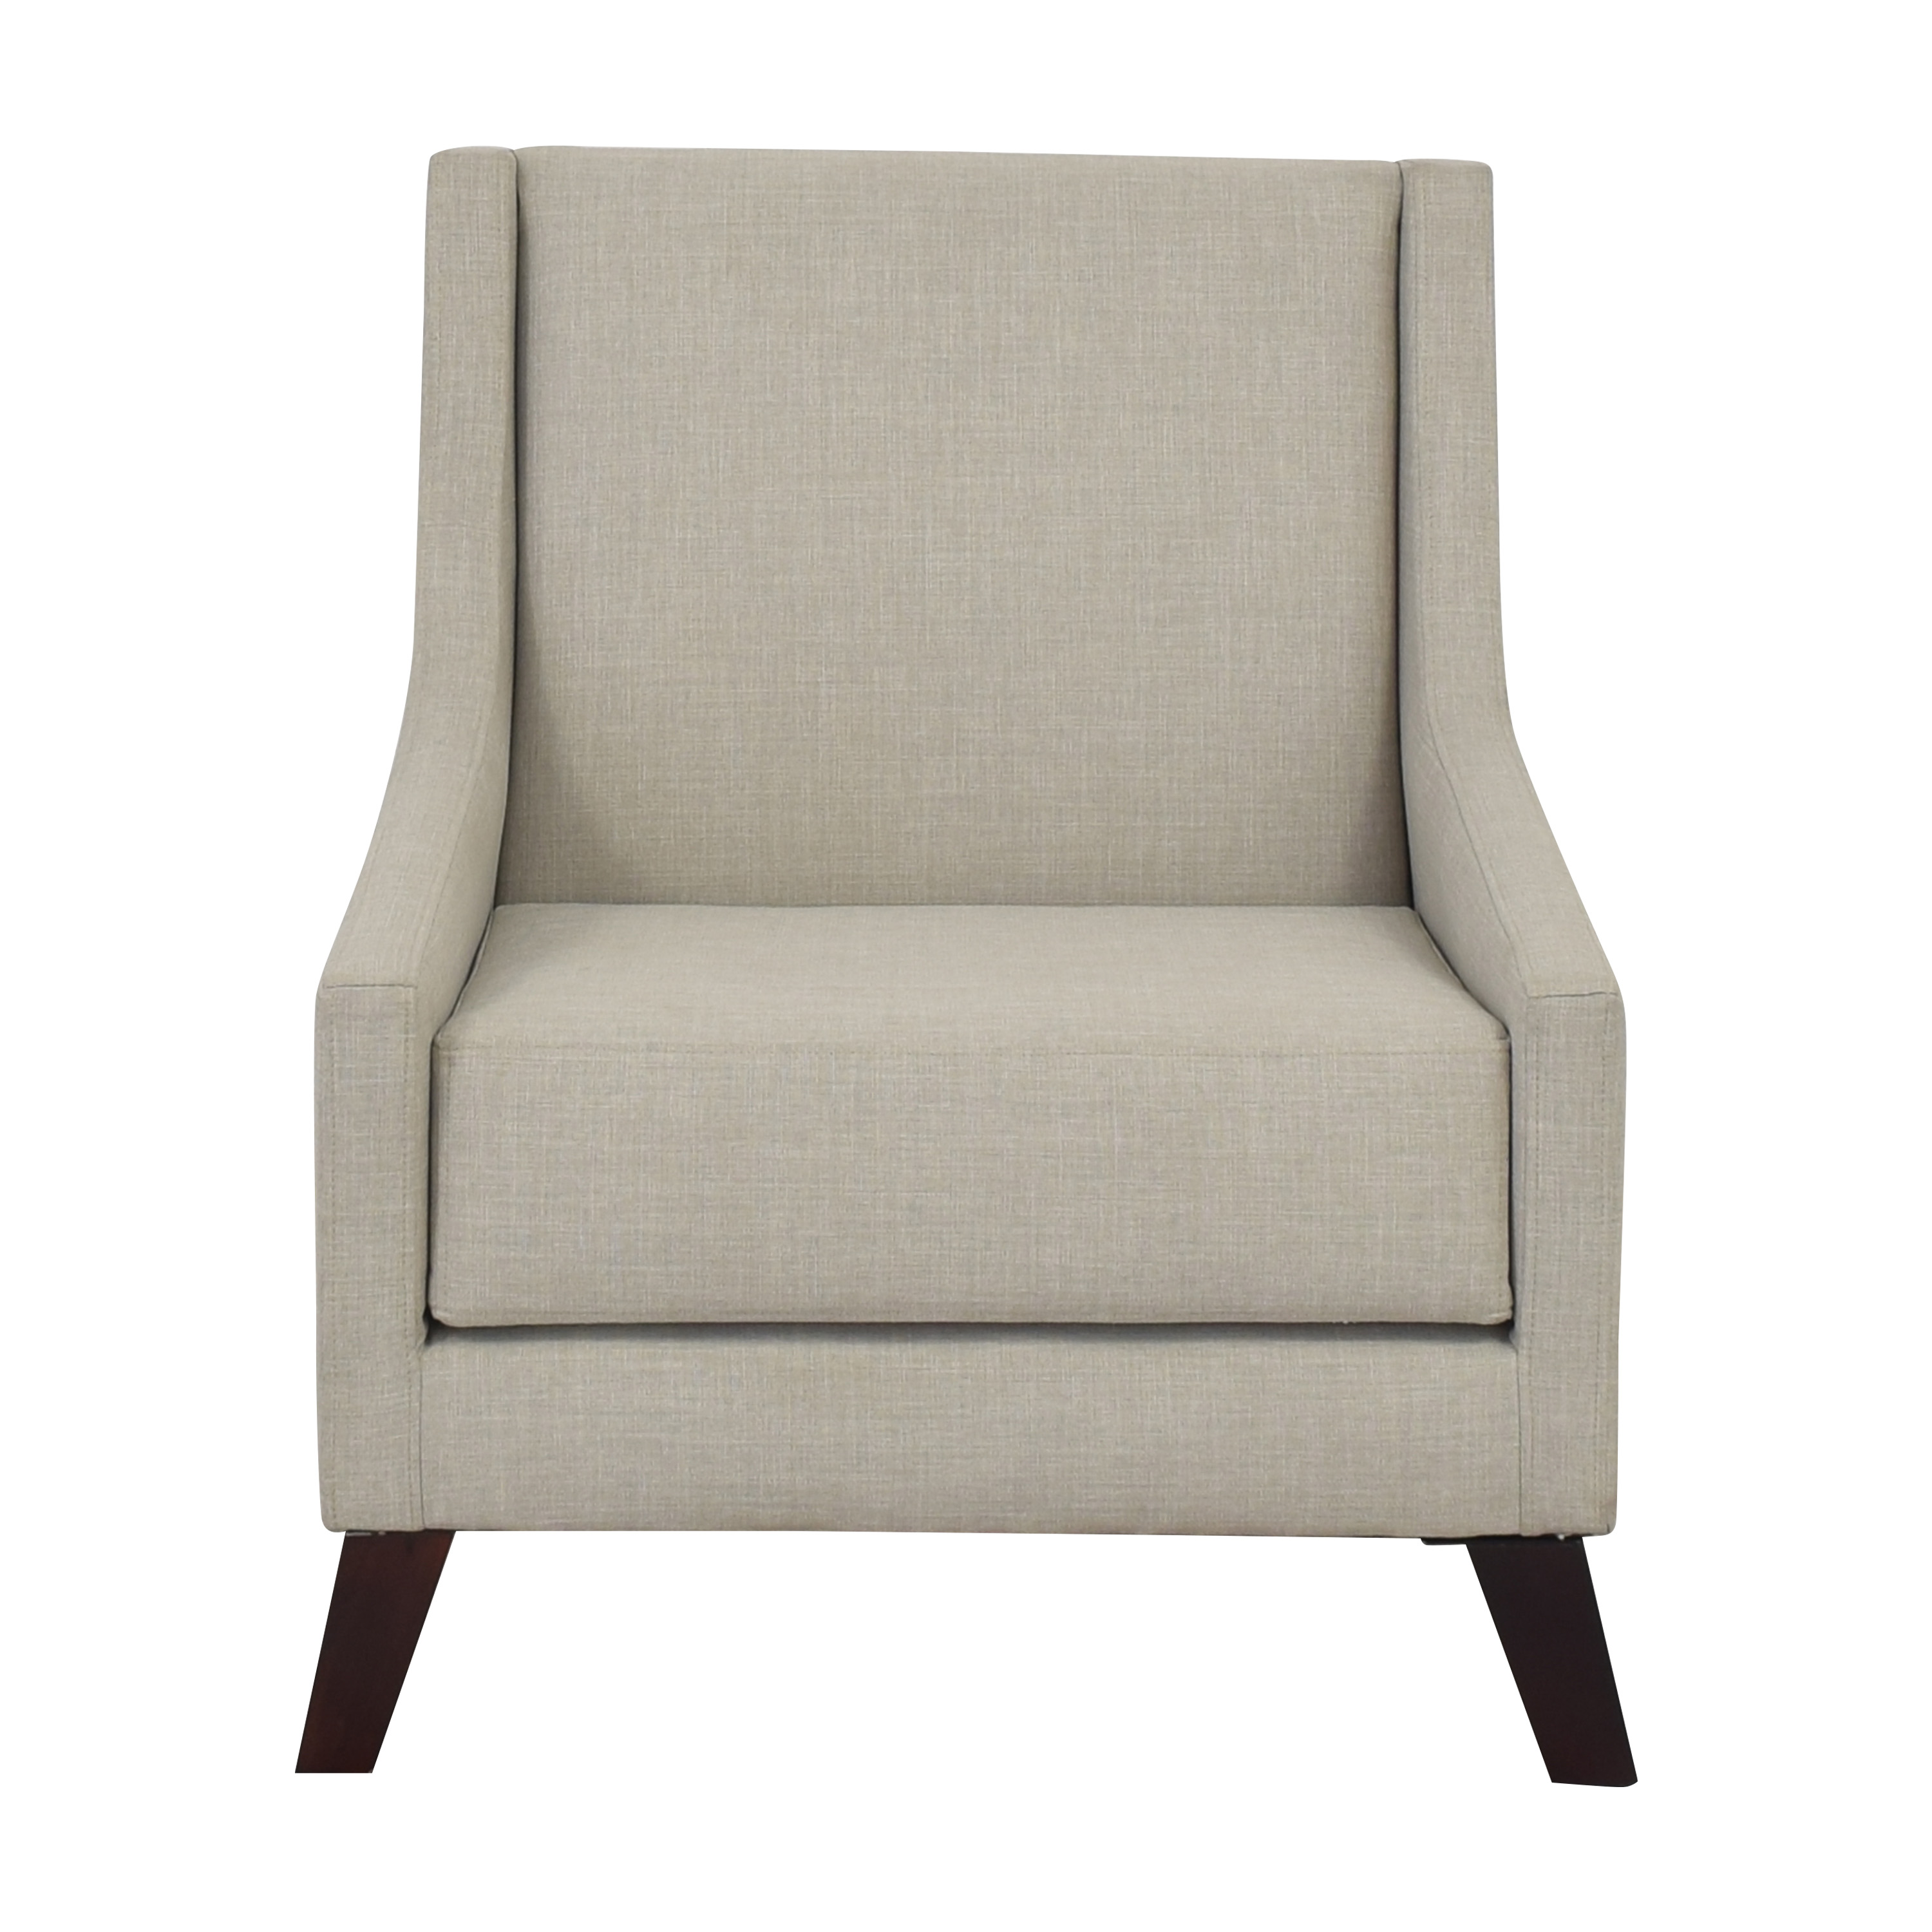 Upholstered Accent Chair price